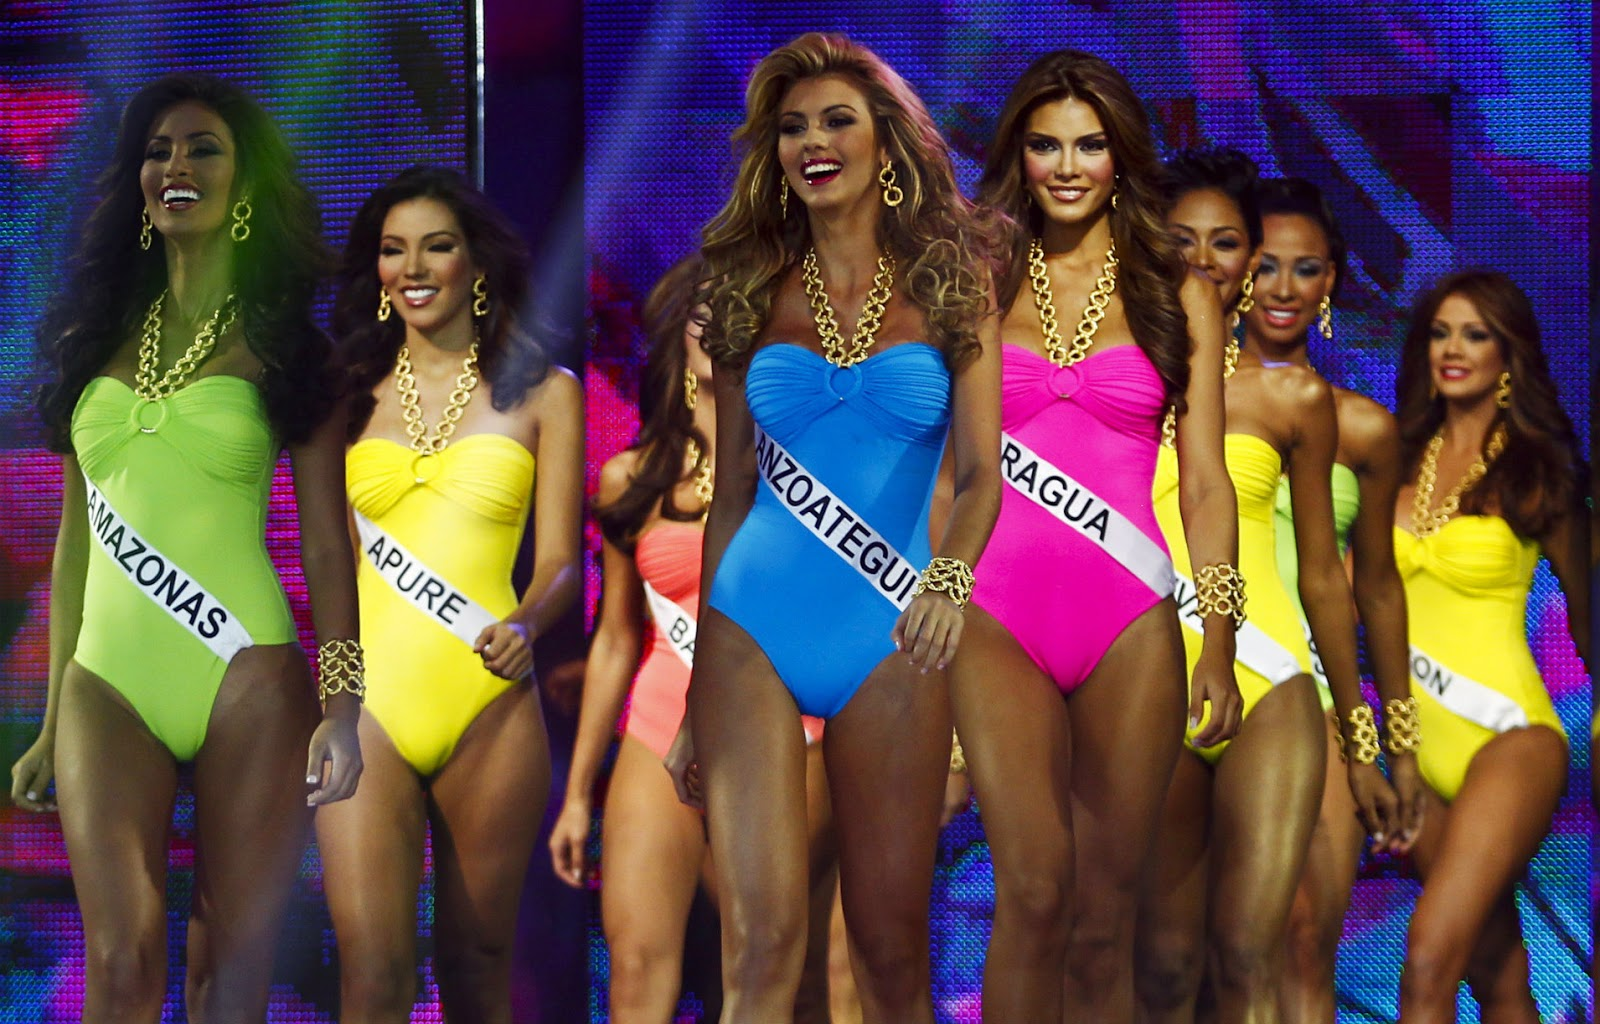 Miss Universe2012 http://listofcelebrities.blogspot.com/2013/01/miss-universe-2012-swimsuit-competition.html